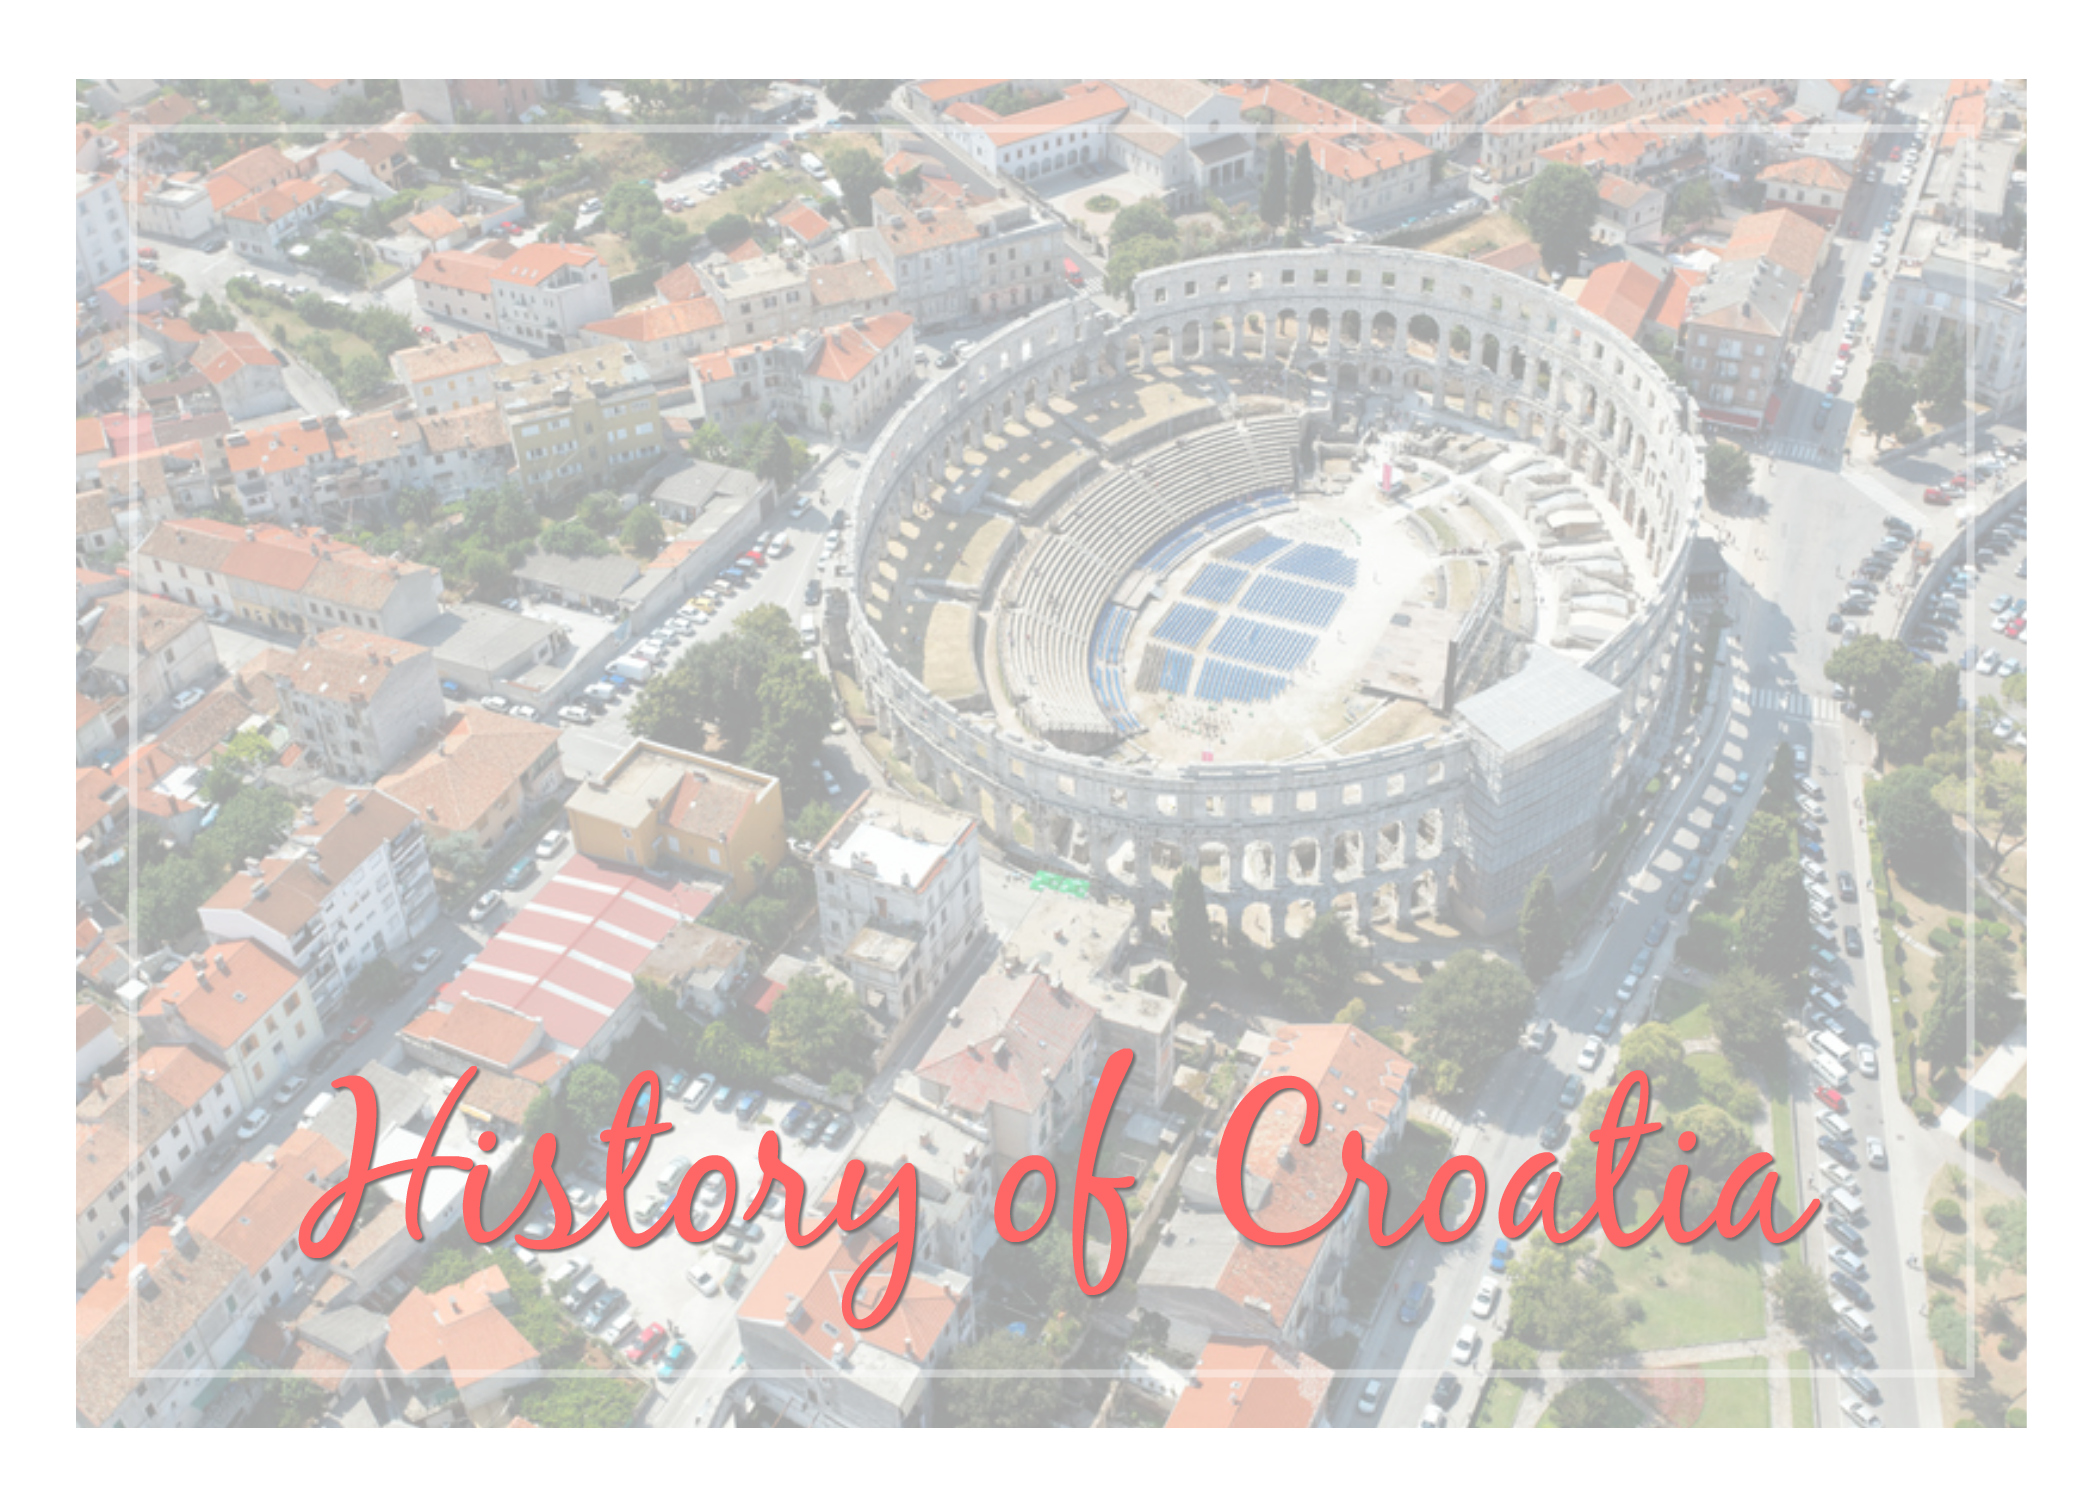 History of Croatia